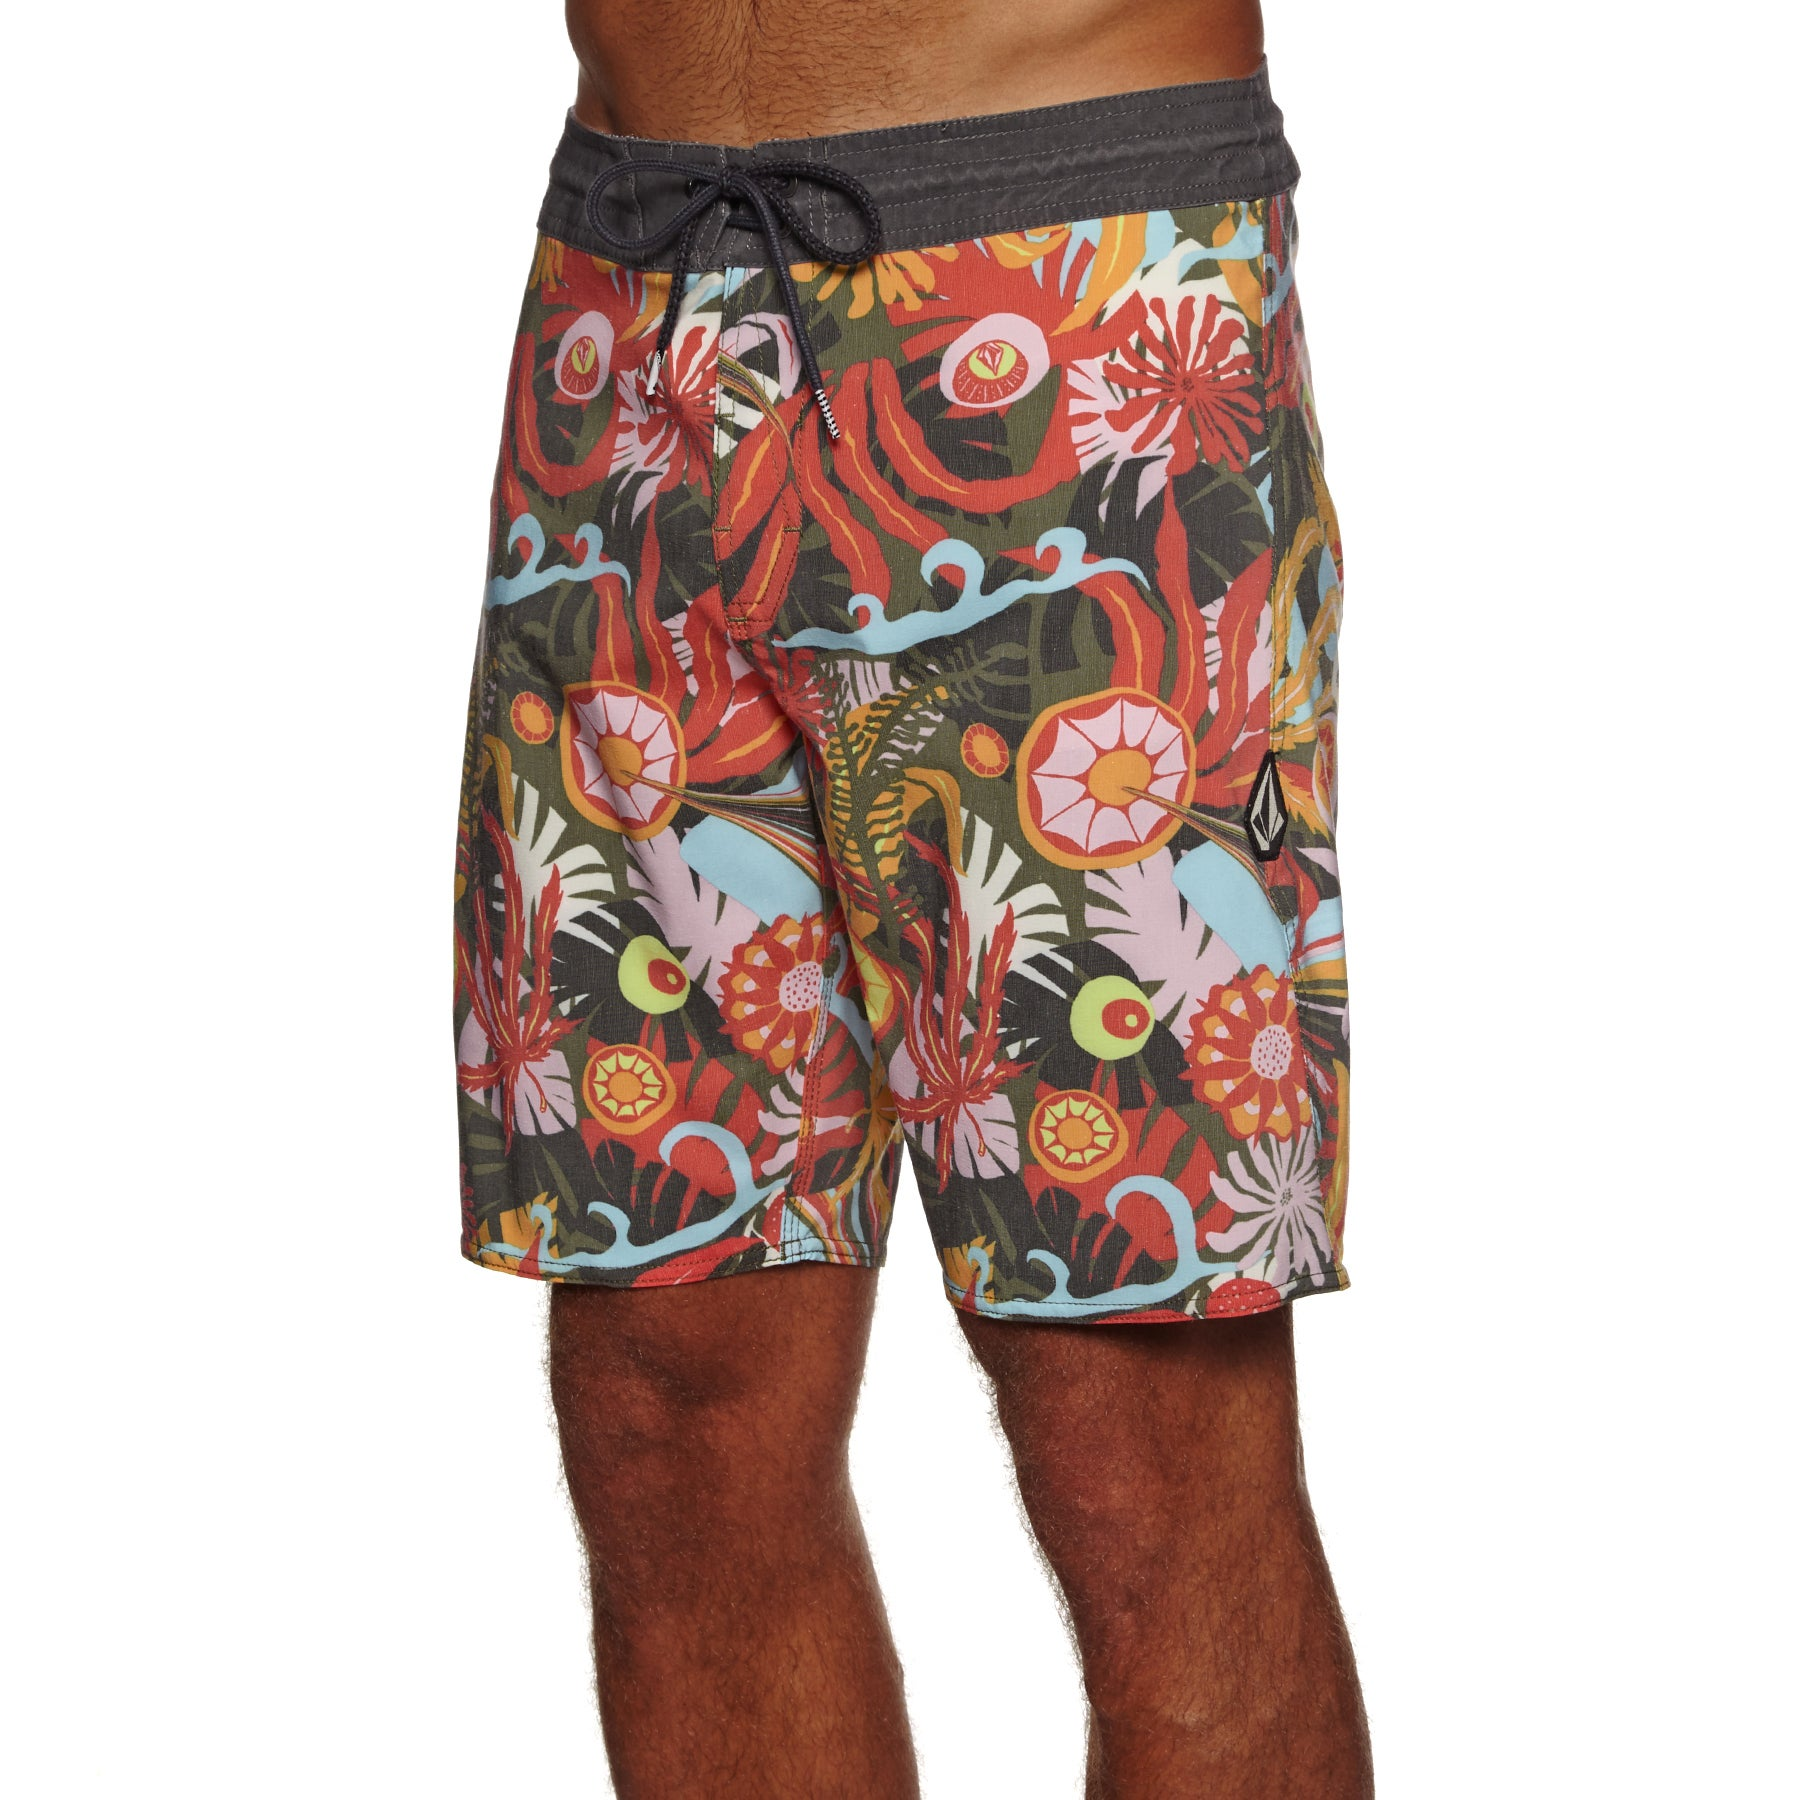 ShortsFree Available Board Surfdome Mens Delivery At JclFK13T